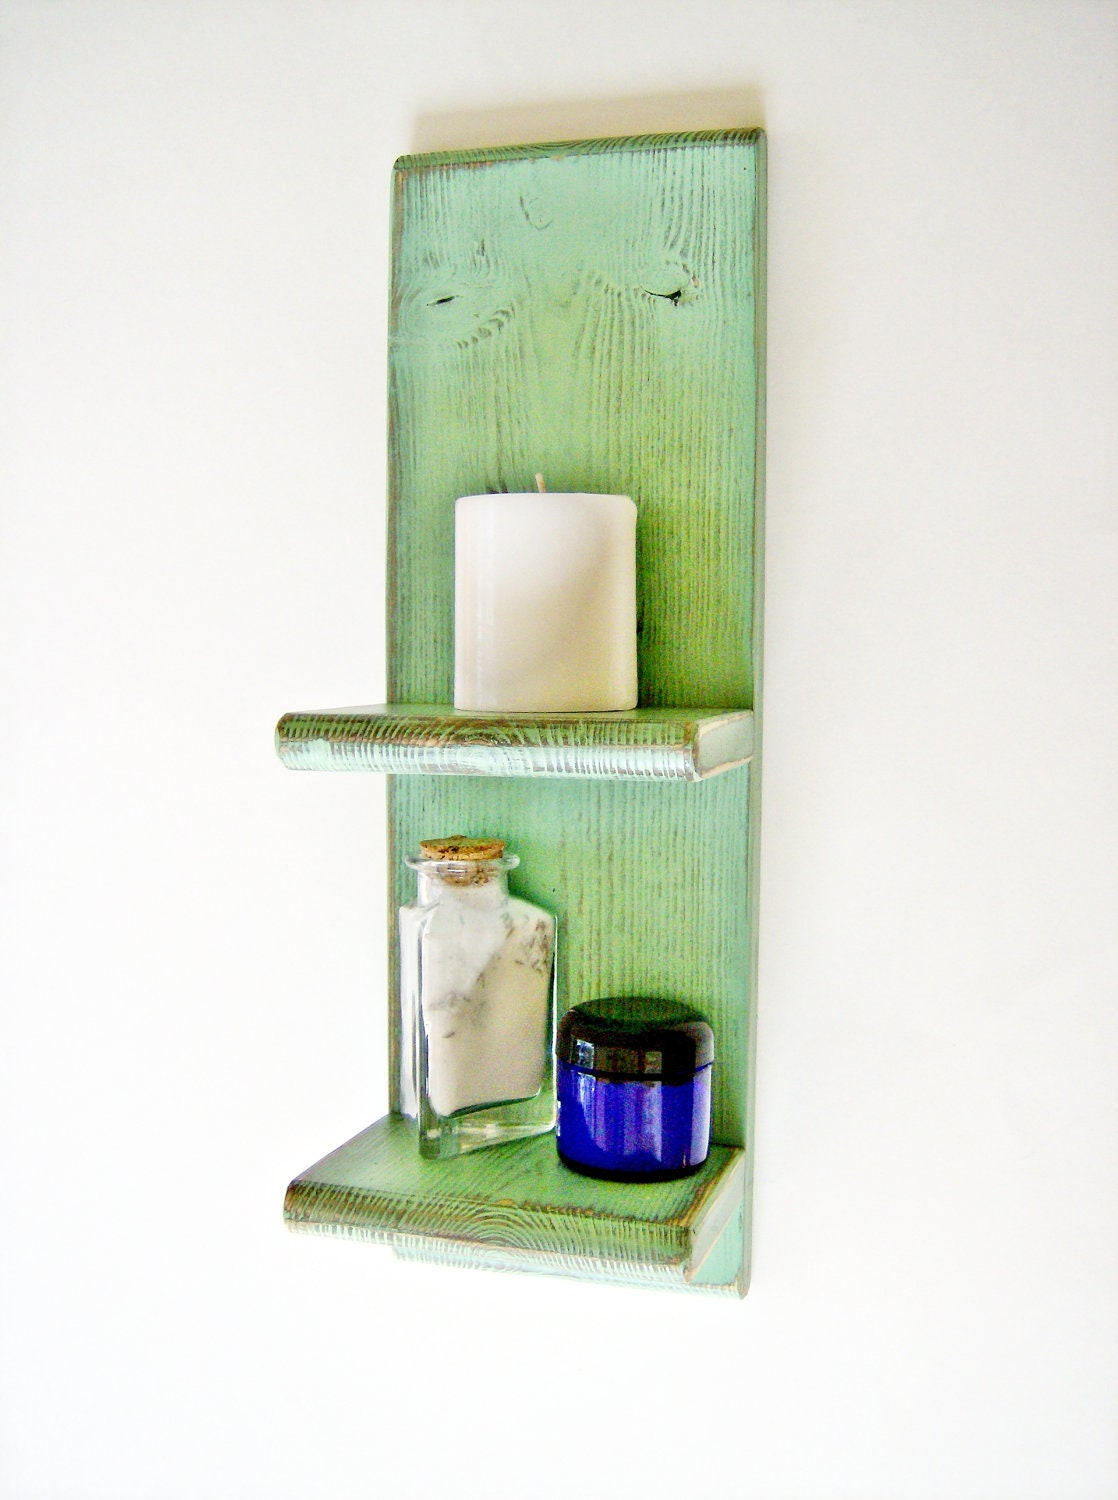 Bathroom decor accessory green wall shelf by blueridgesawdust for Bathroom decor green walls